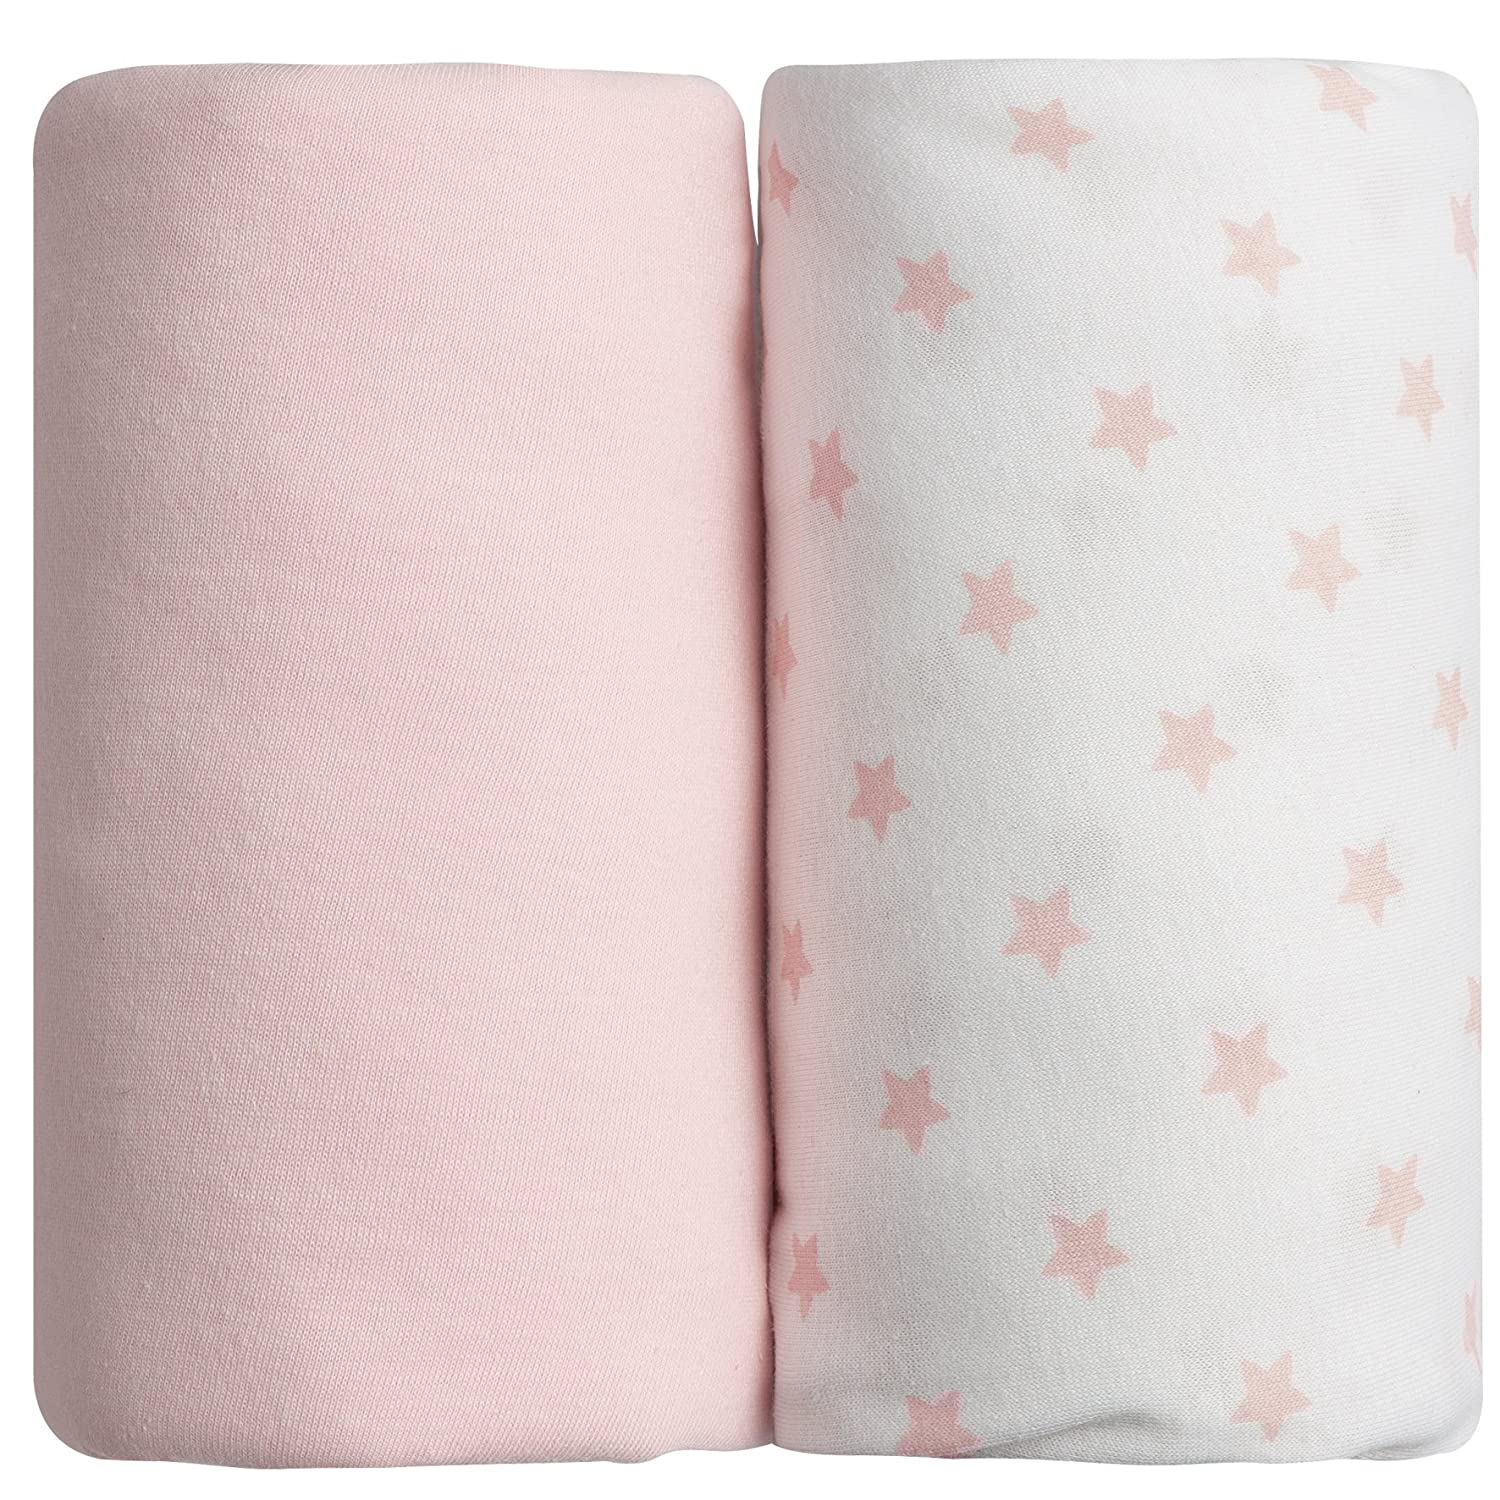 Babycalin - Lot de 2 draps housse rose - 70x140 cm BBC414806